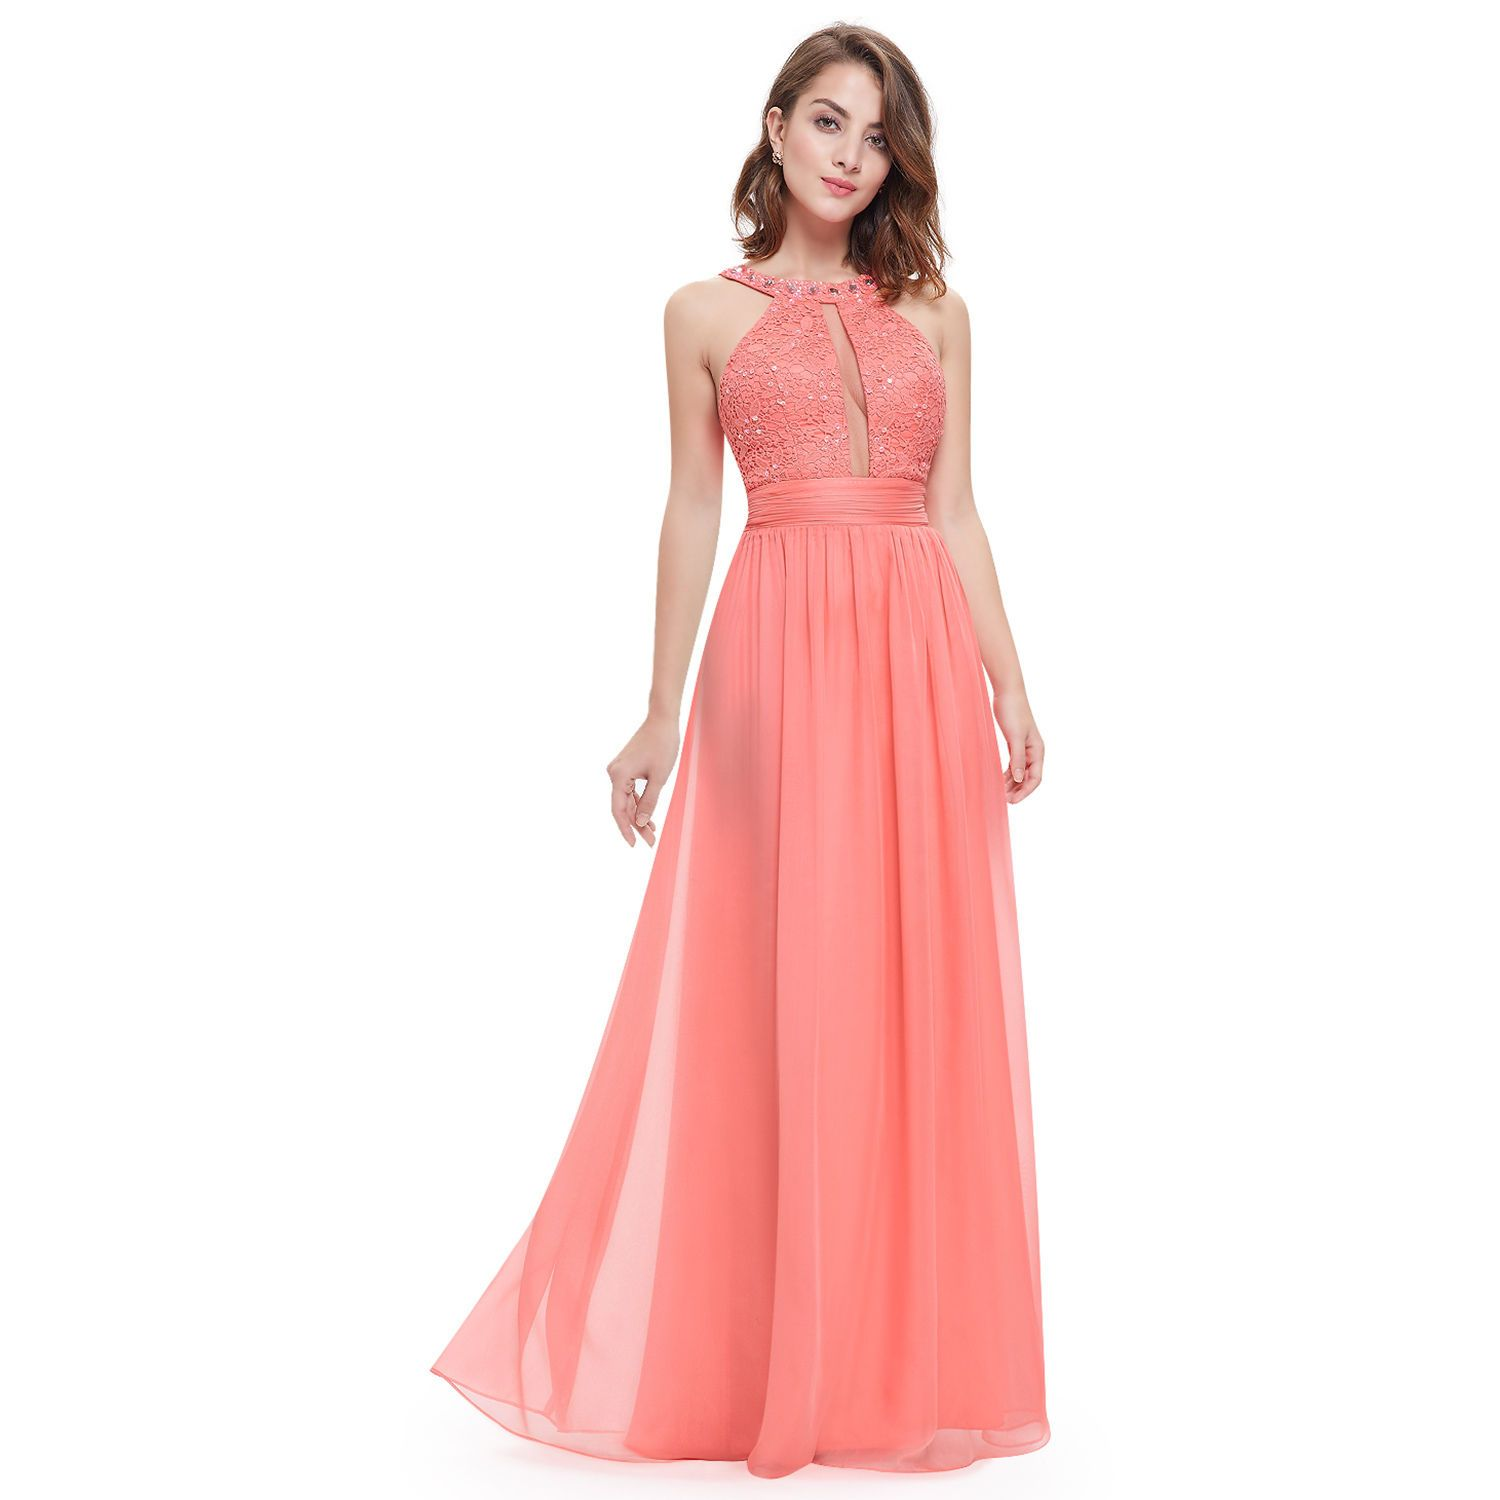 Nice halter bridesmaid dress sexy homecoming party prom ball gown